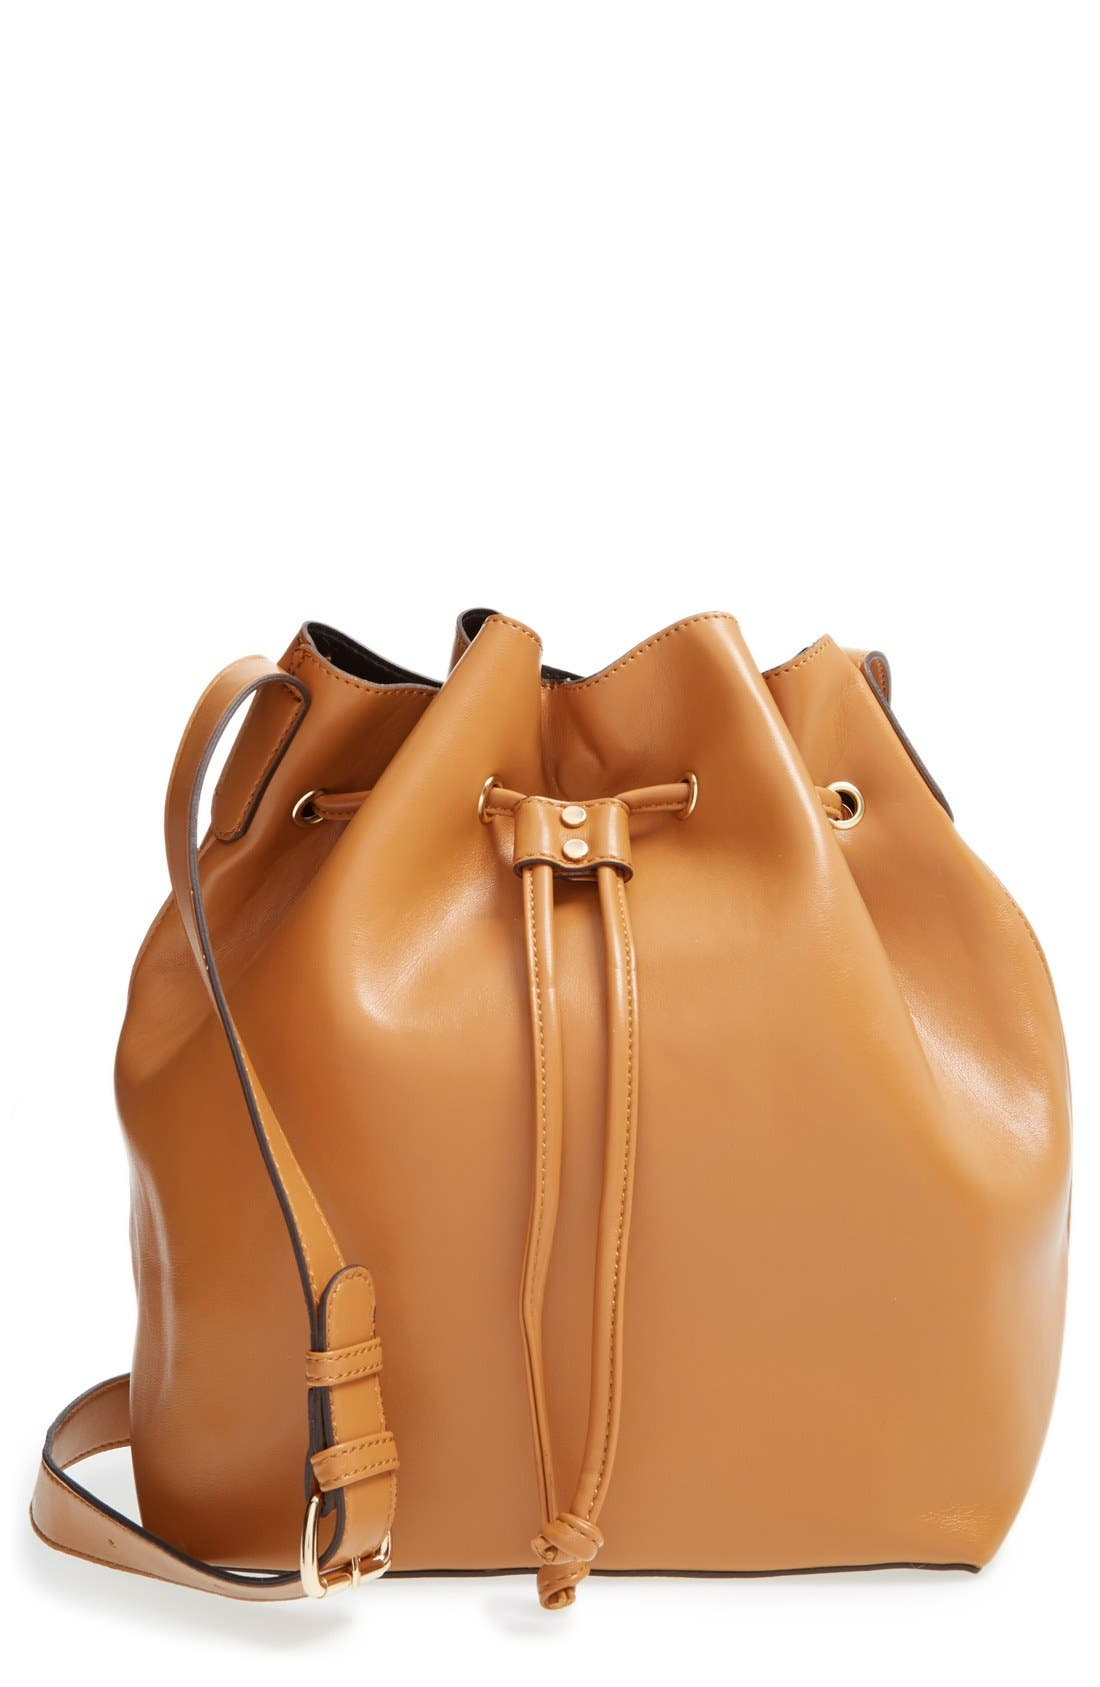 SOLE SOCIETY 'Nevin' Faux Leather Drawstring Bucket Bag, Main, color, 200